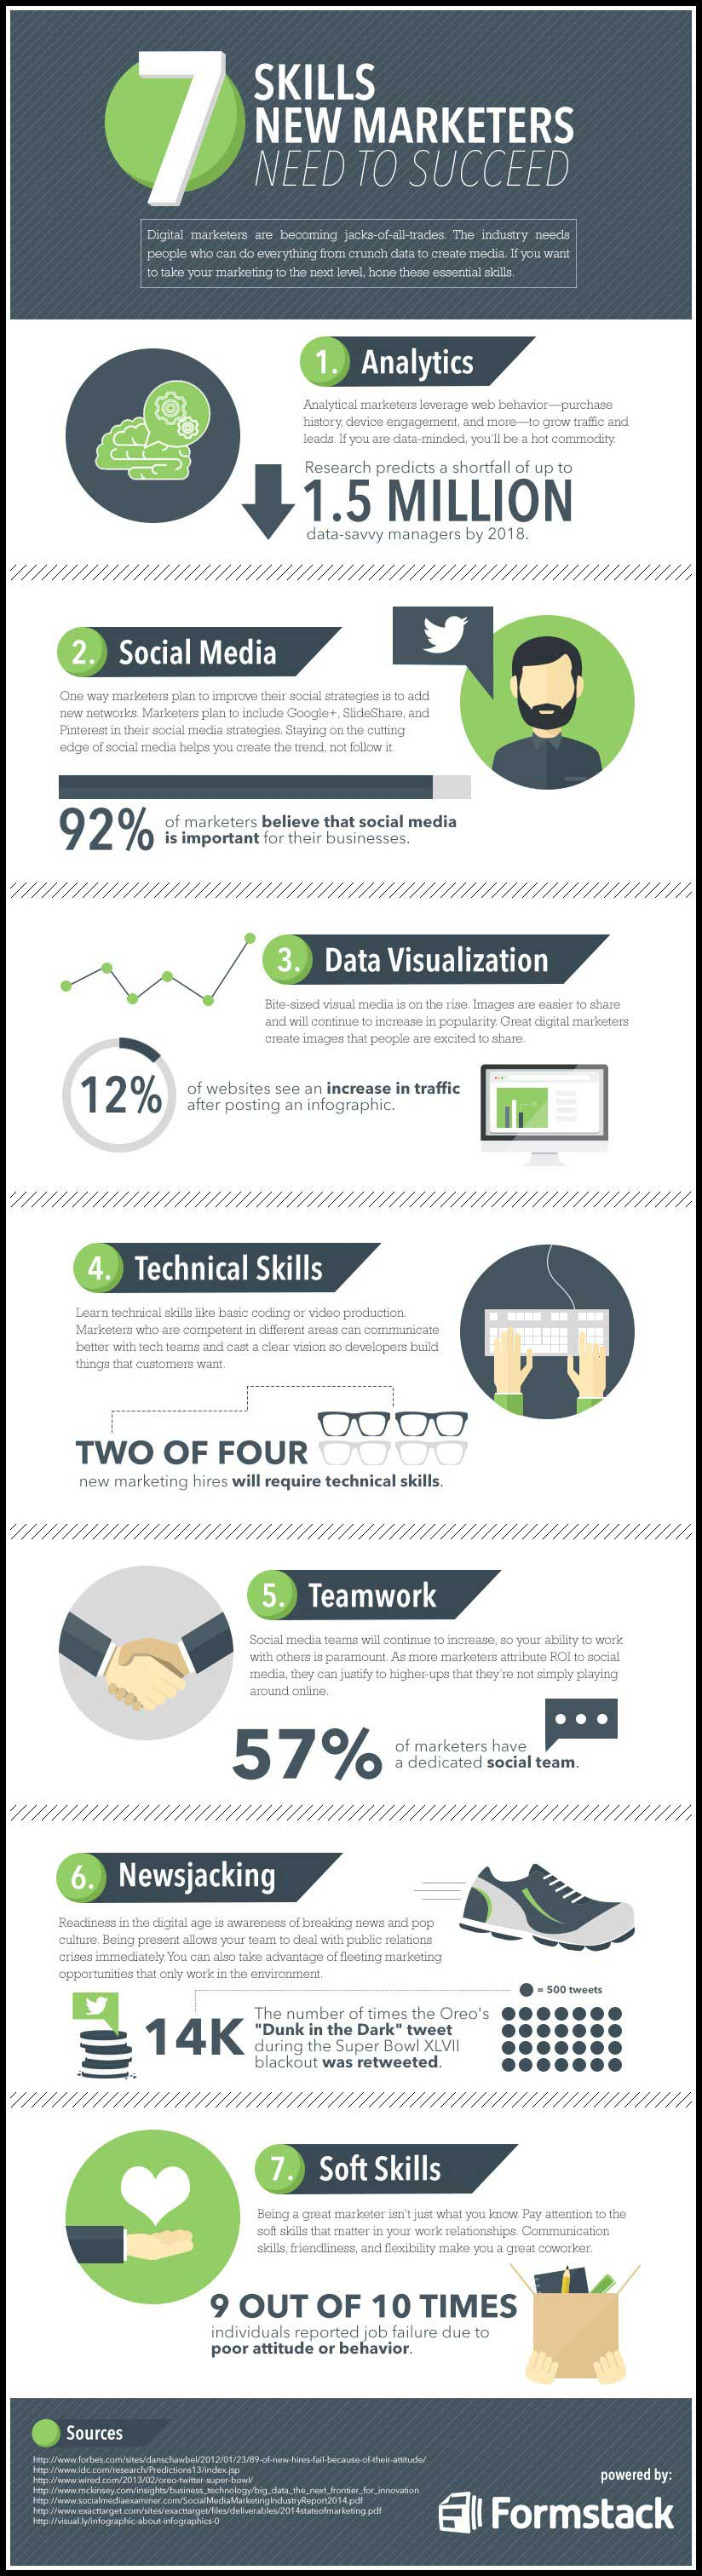 7 Skills Marketers Need To Succeed In 2015